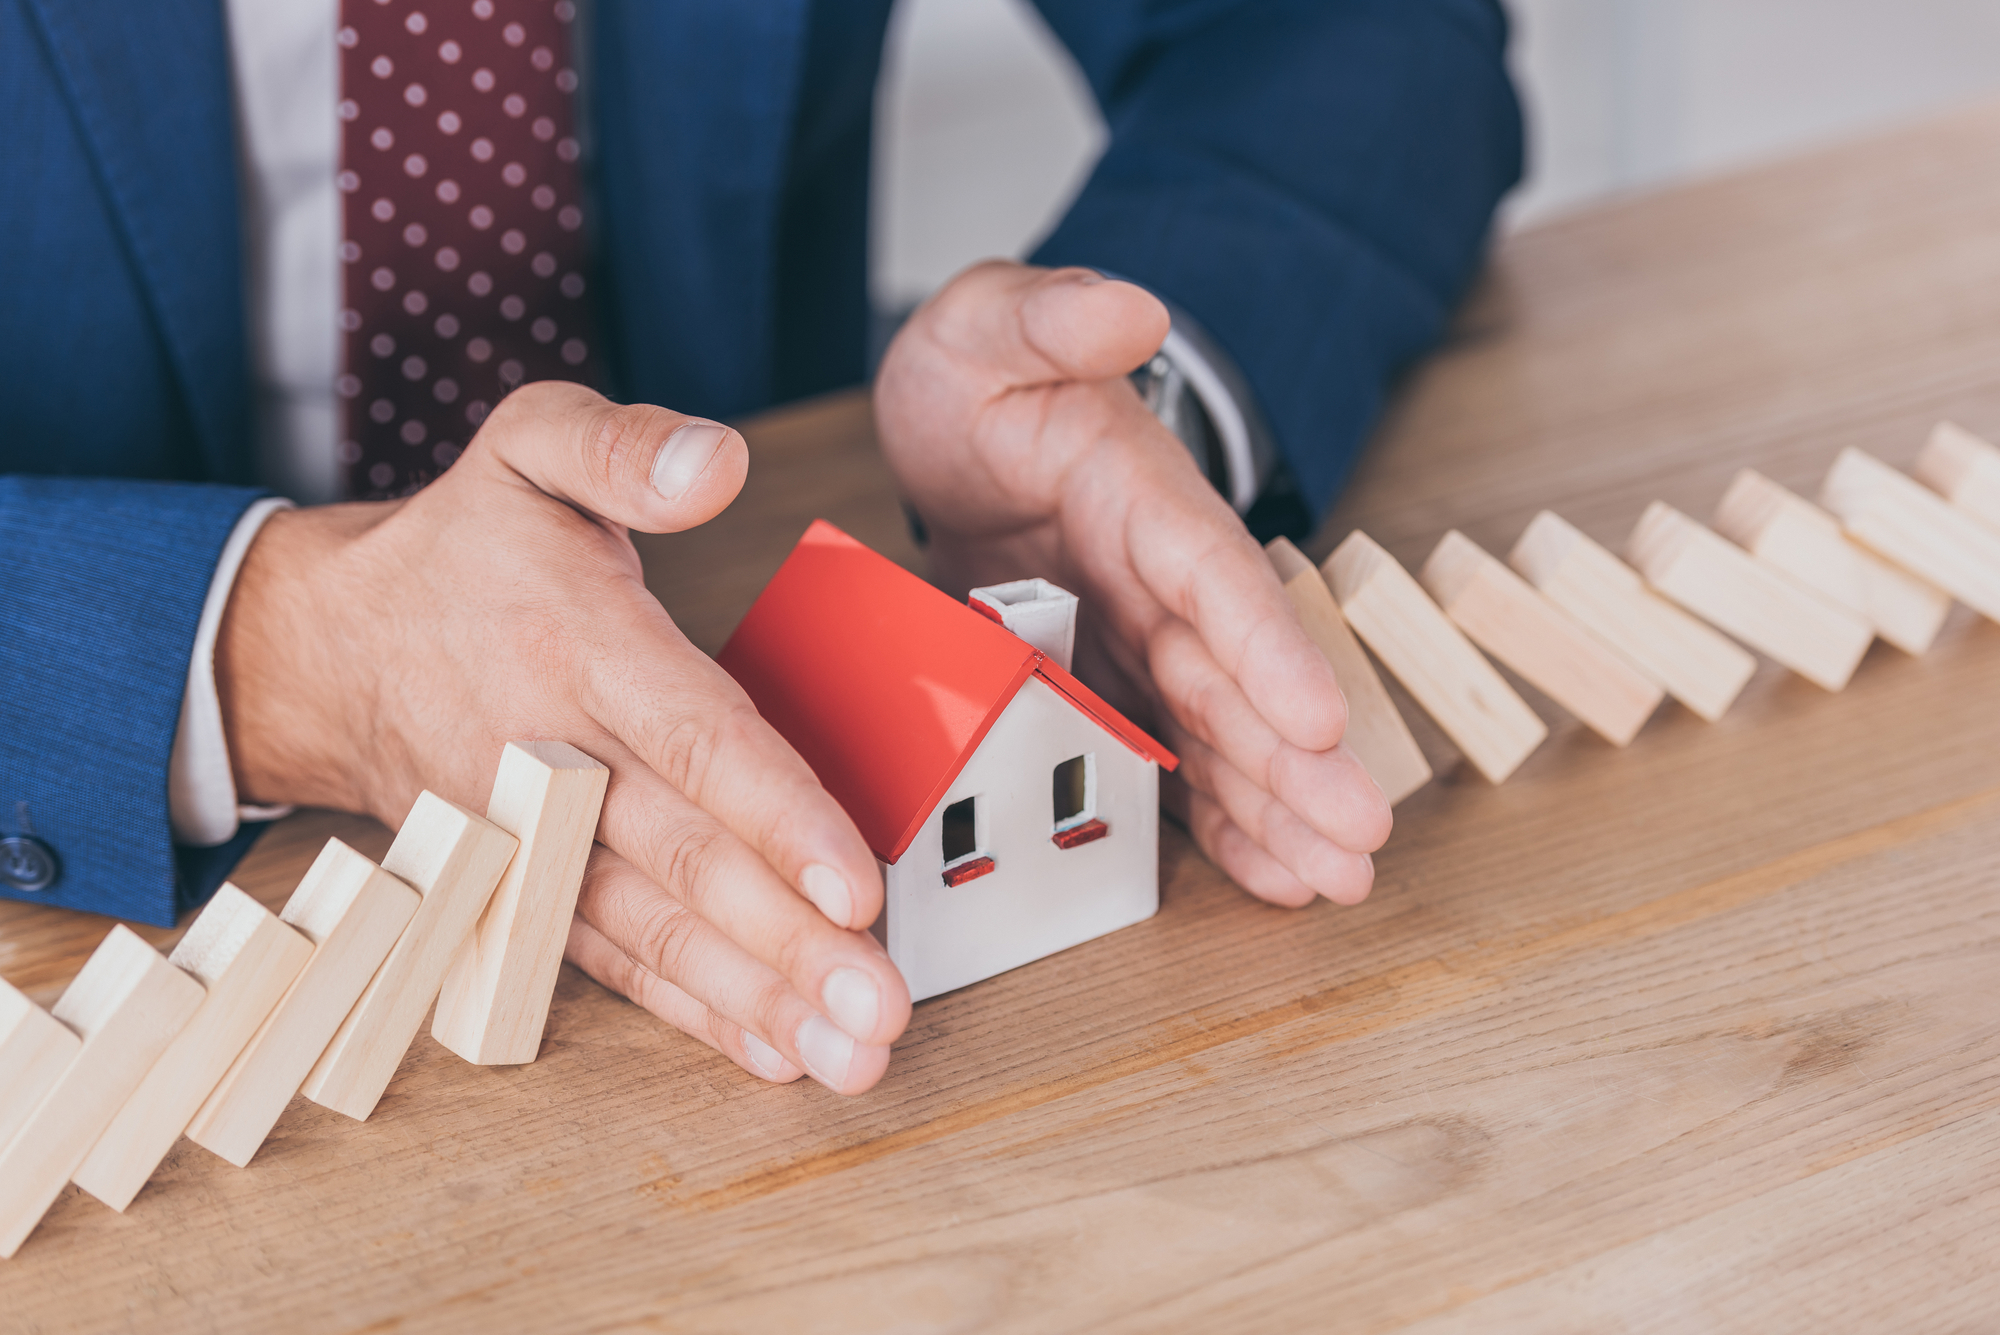 Cropped view of risk manager protecting house model from domino effect of falling wooden blocks with hands